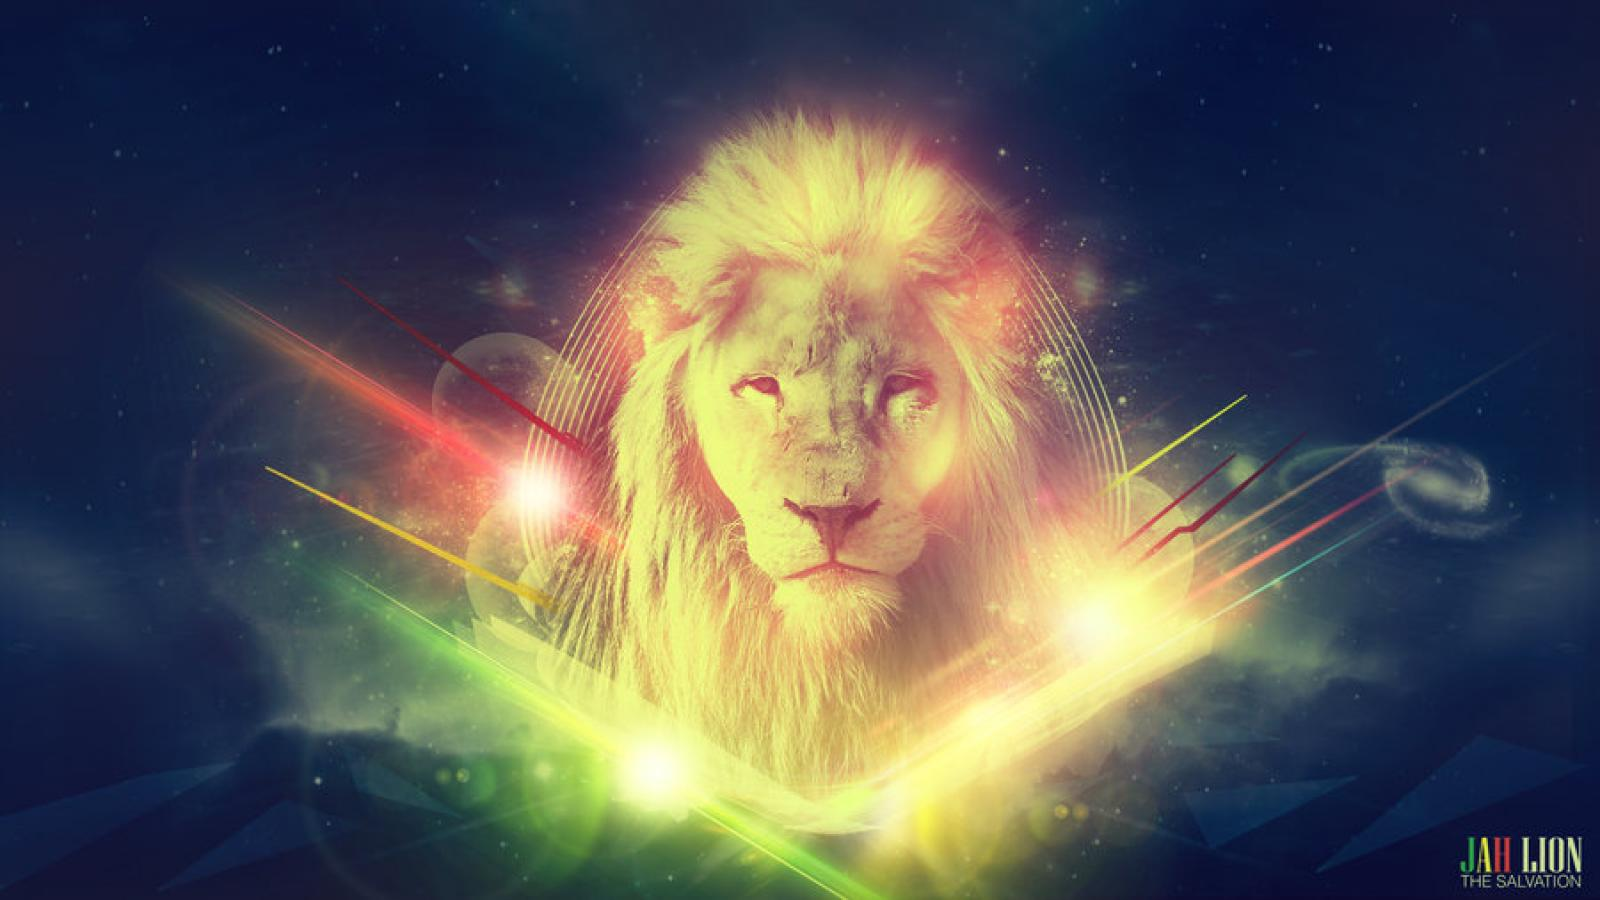 Rainbow Lion Hd Wallpaper - Lion Jah , HD Wallpaper & Backgrounds